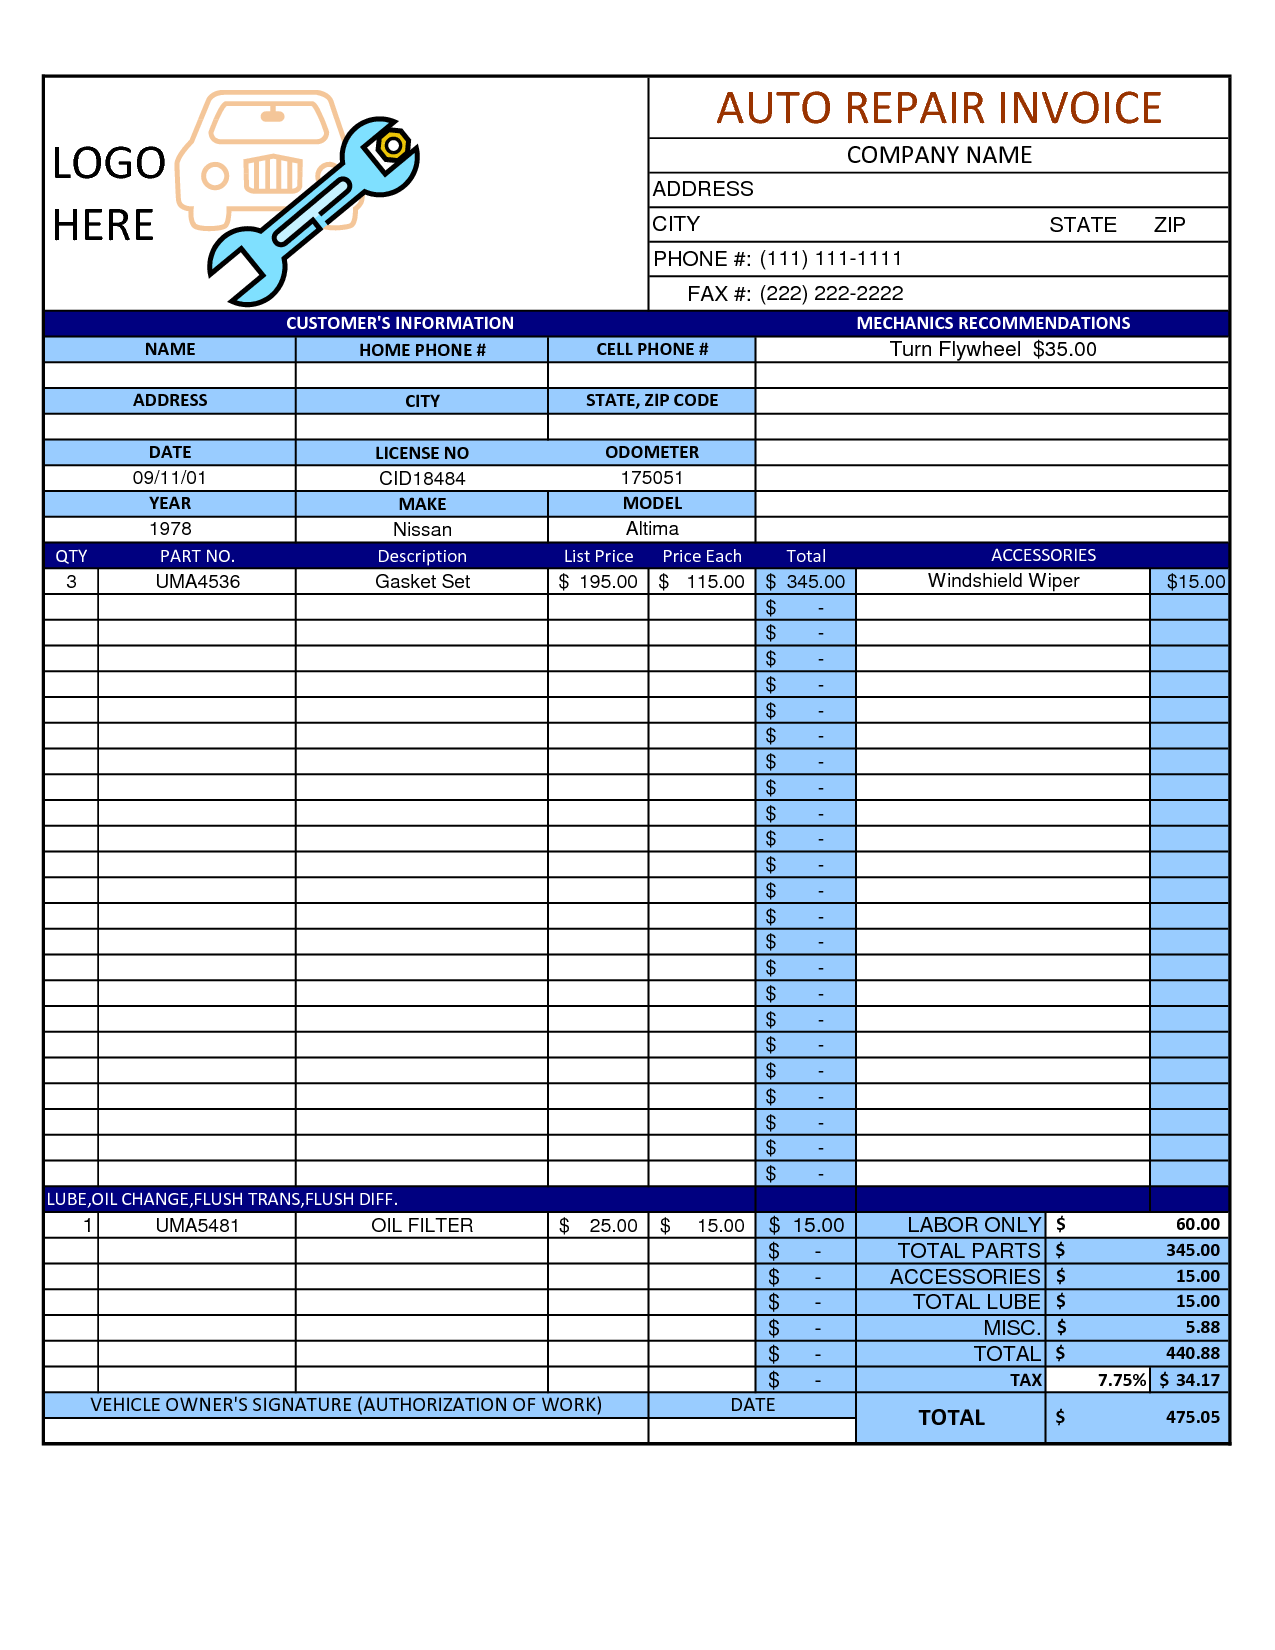 Mechanic Shop Invoice | scope of work template | Working ...